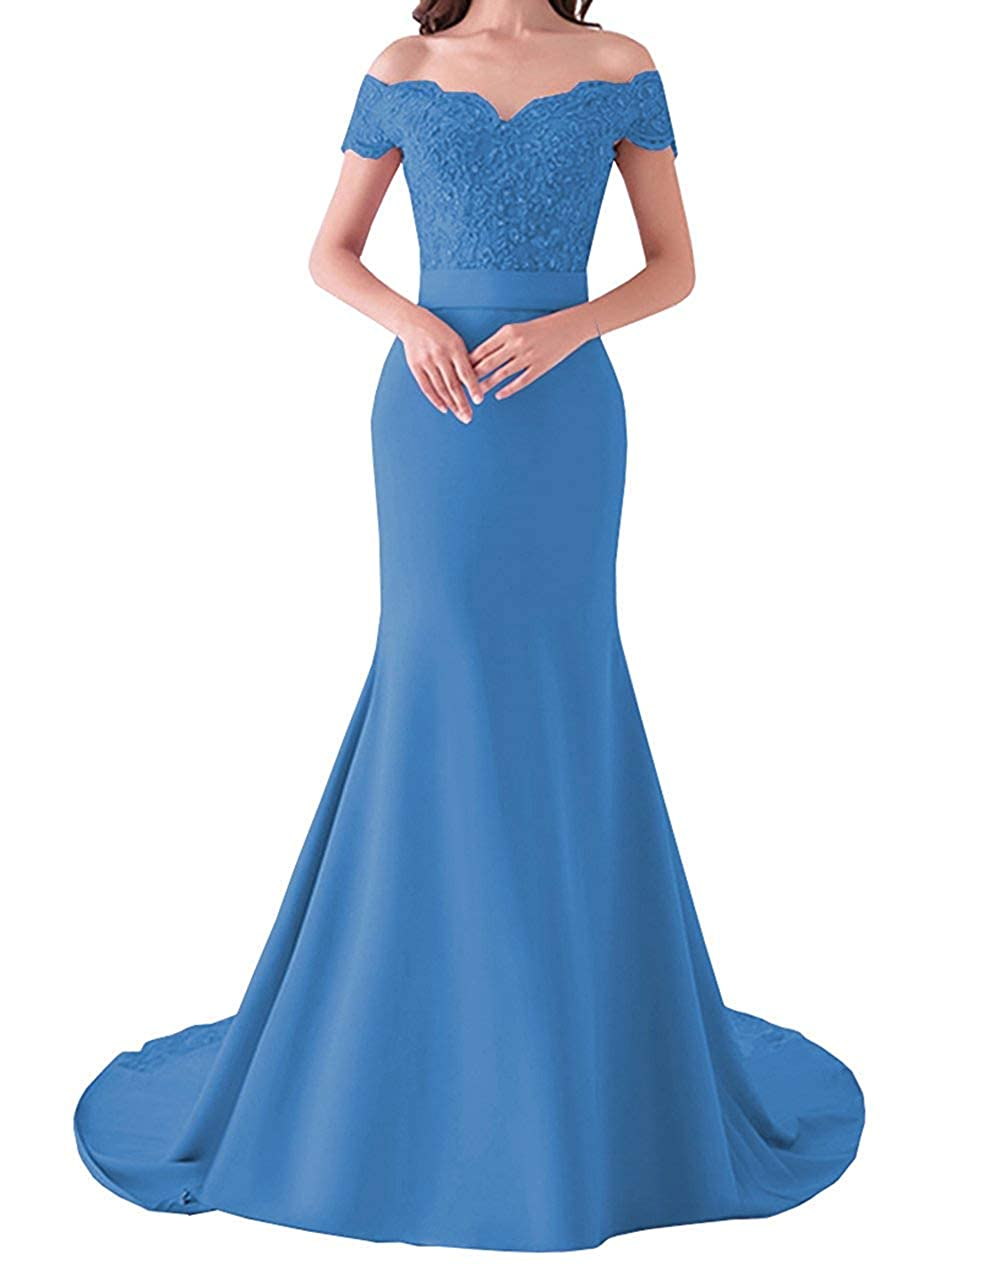 bluee 20KyleBird Women's Sexy Off The Shoulder Lace Mermaid Bridesmaid Dresses Sweetheart Satin Prom Evening Gowns Plus Size